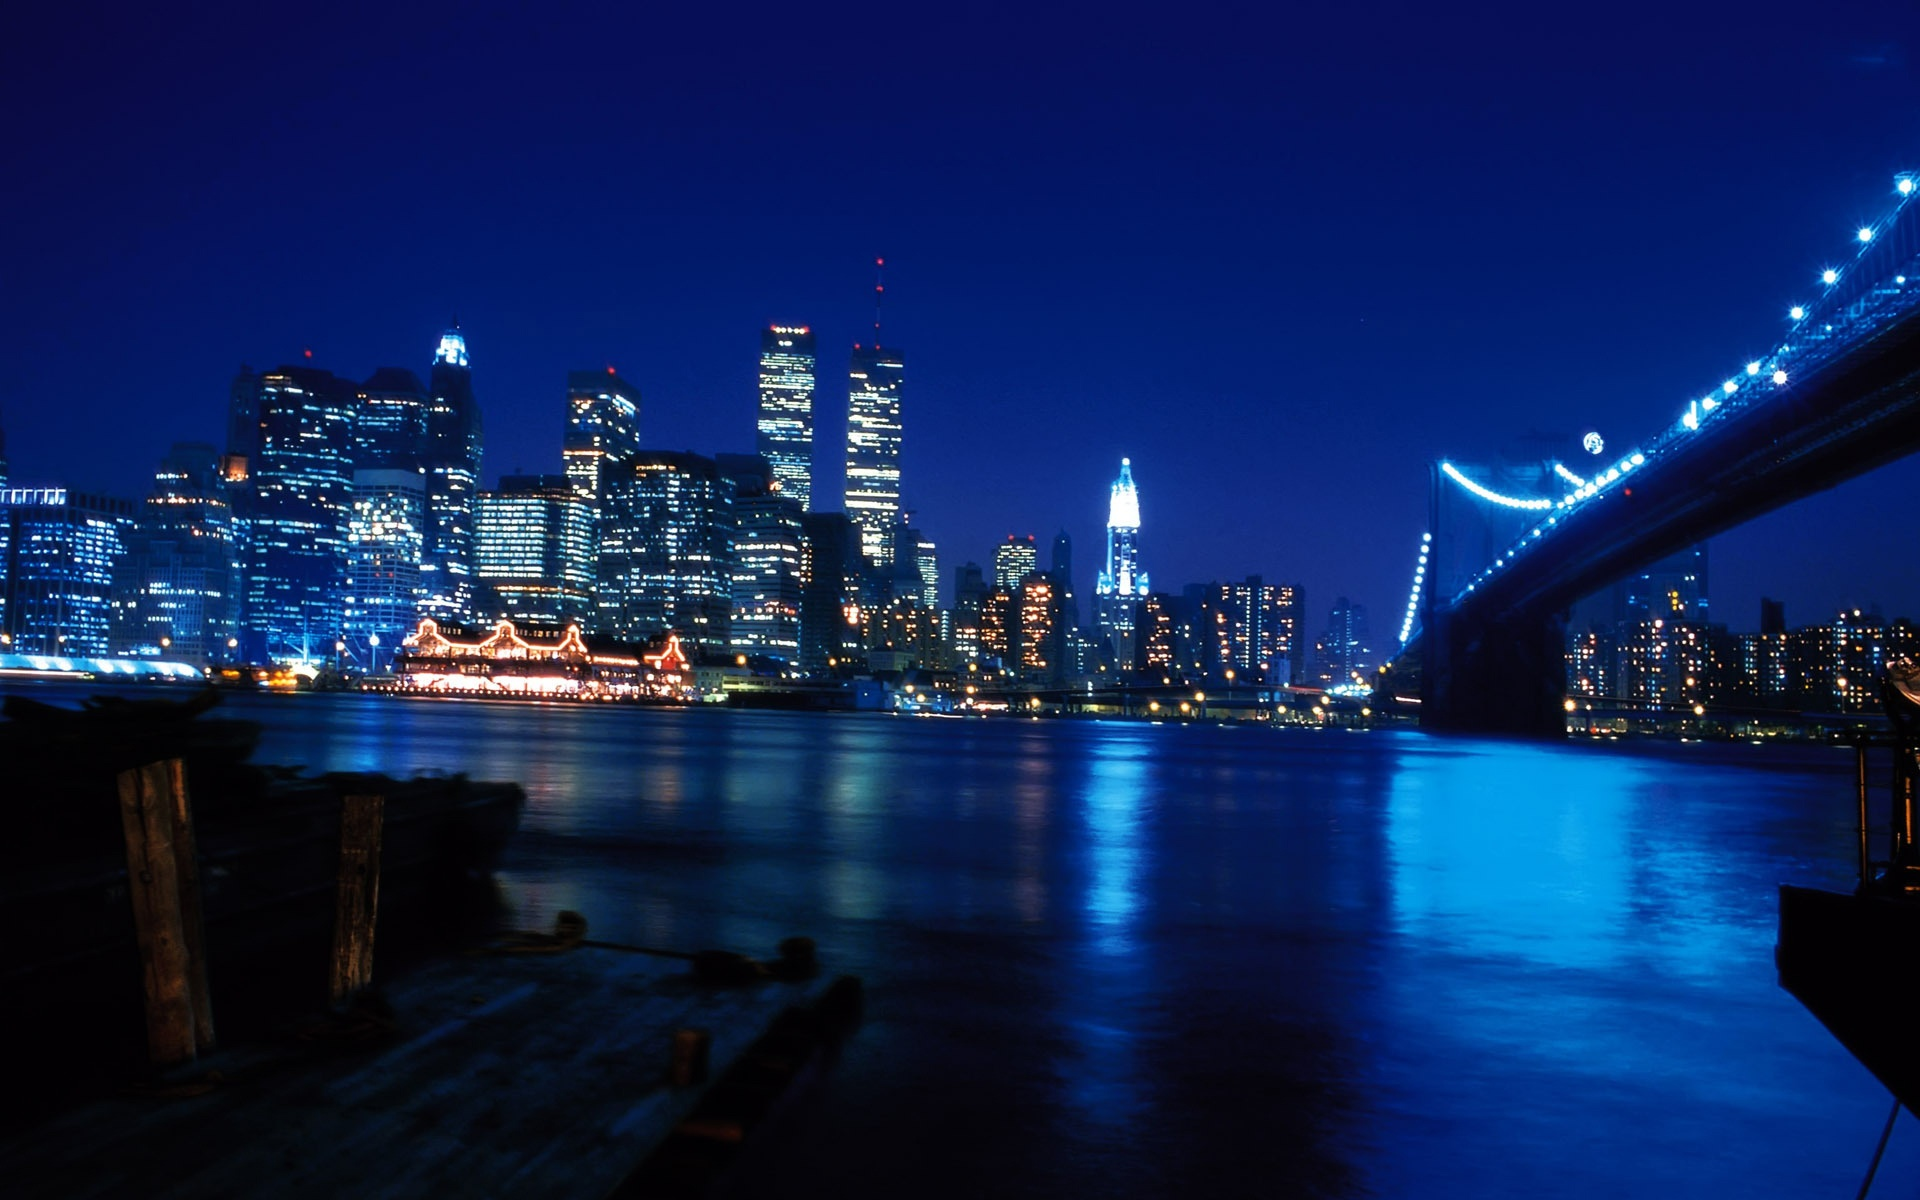 New York City At Blue Night 1920 x 1200 Download Close 1920x1200